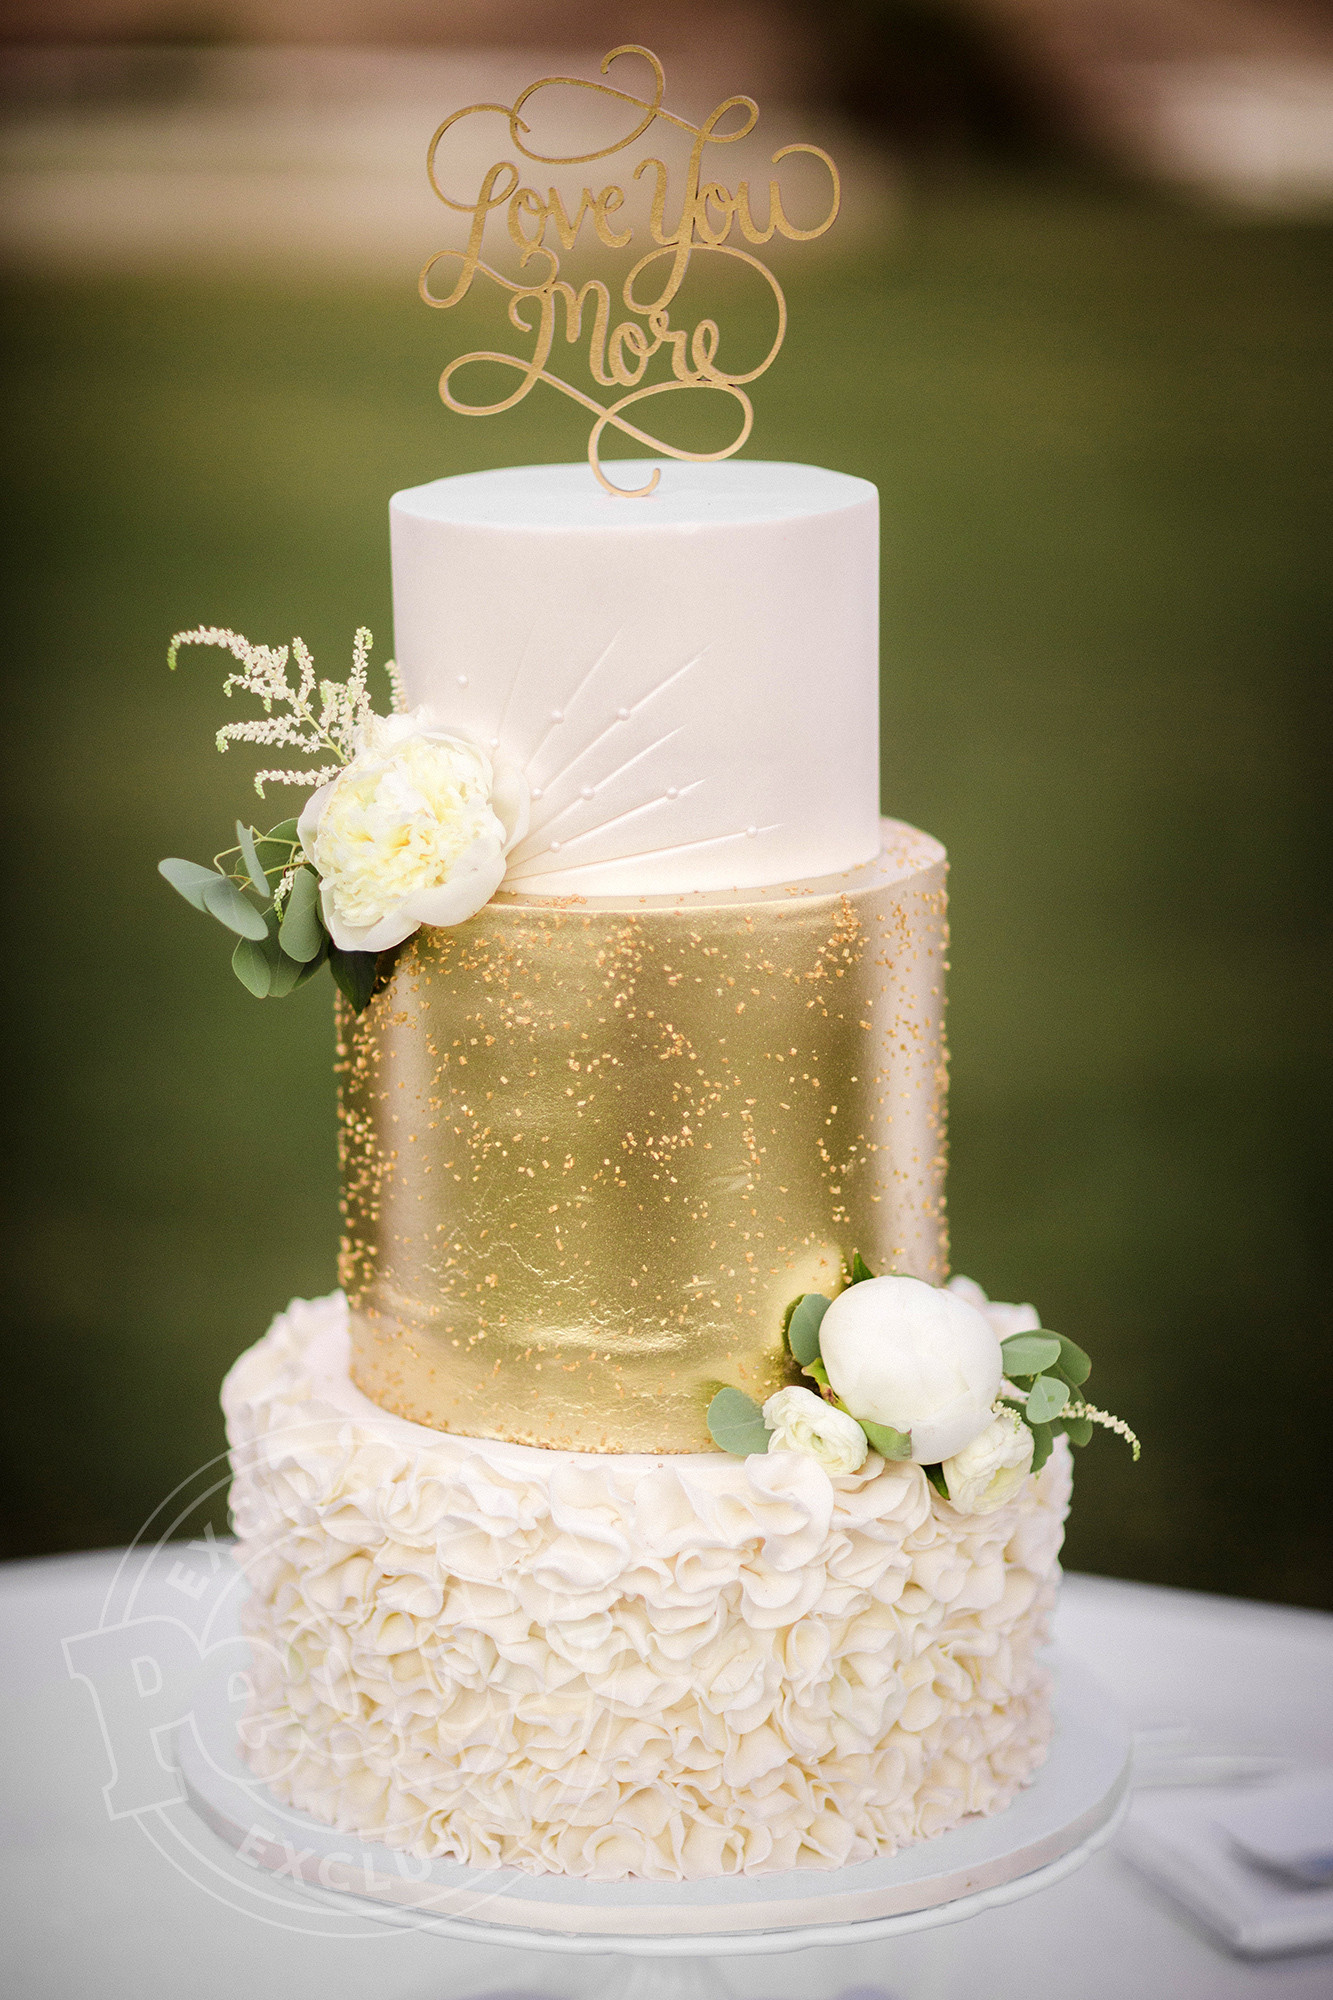 3 Layer Wedding Cakes  Corbin Bleu Wedding Cake See the Three Tiered Beauty